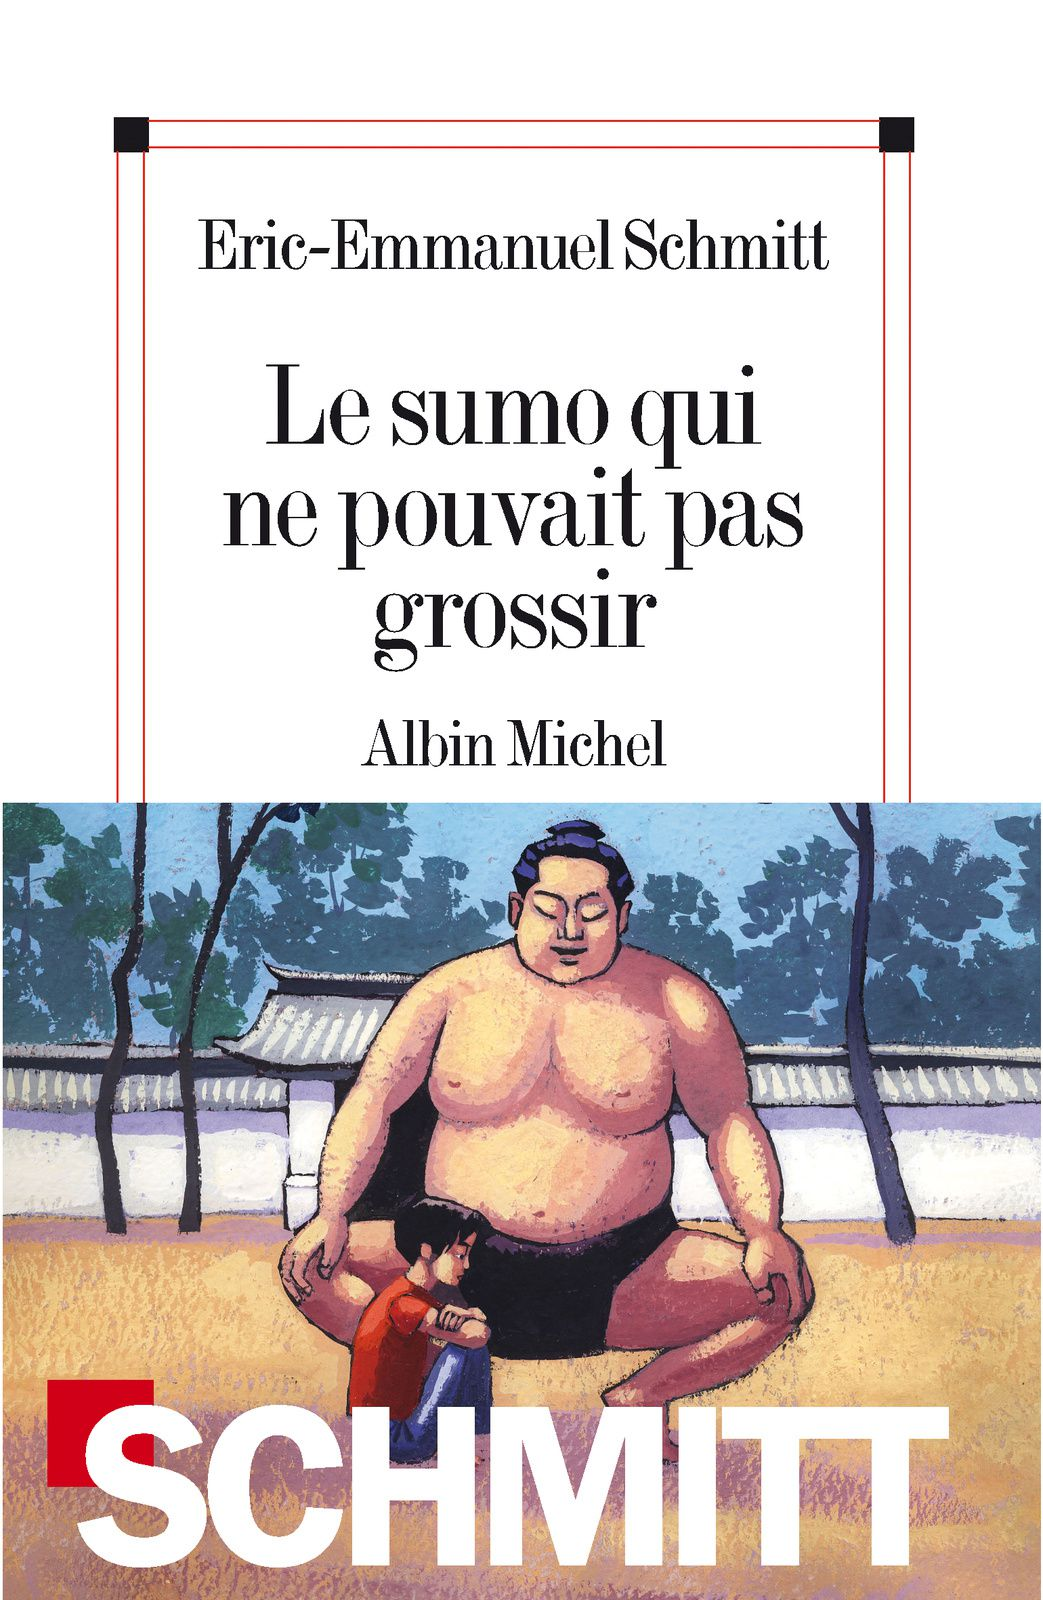 Roman - Editions Albin Michel - Avril 2009 - 102 pages